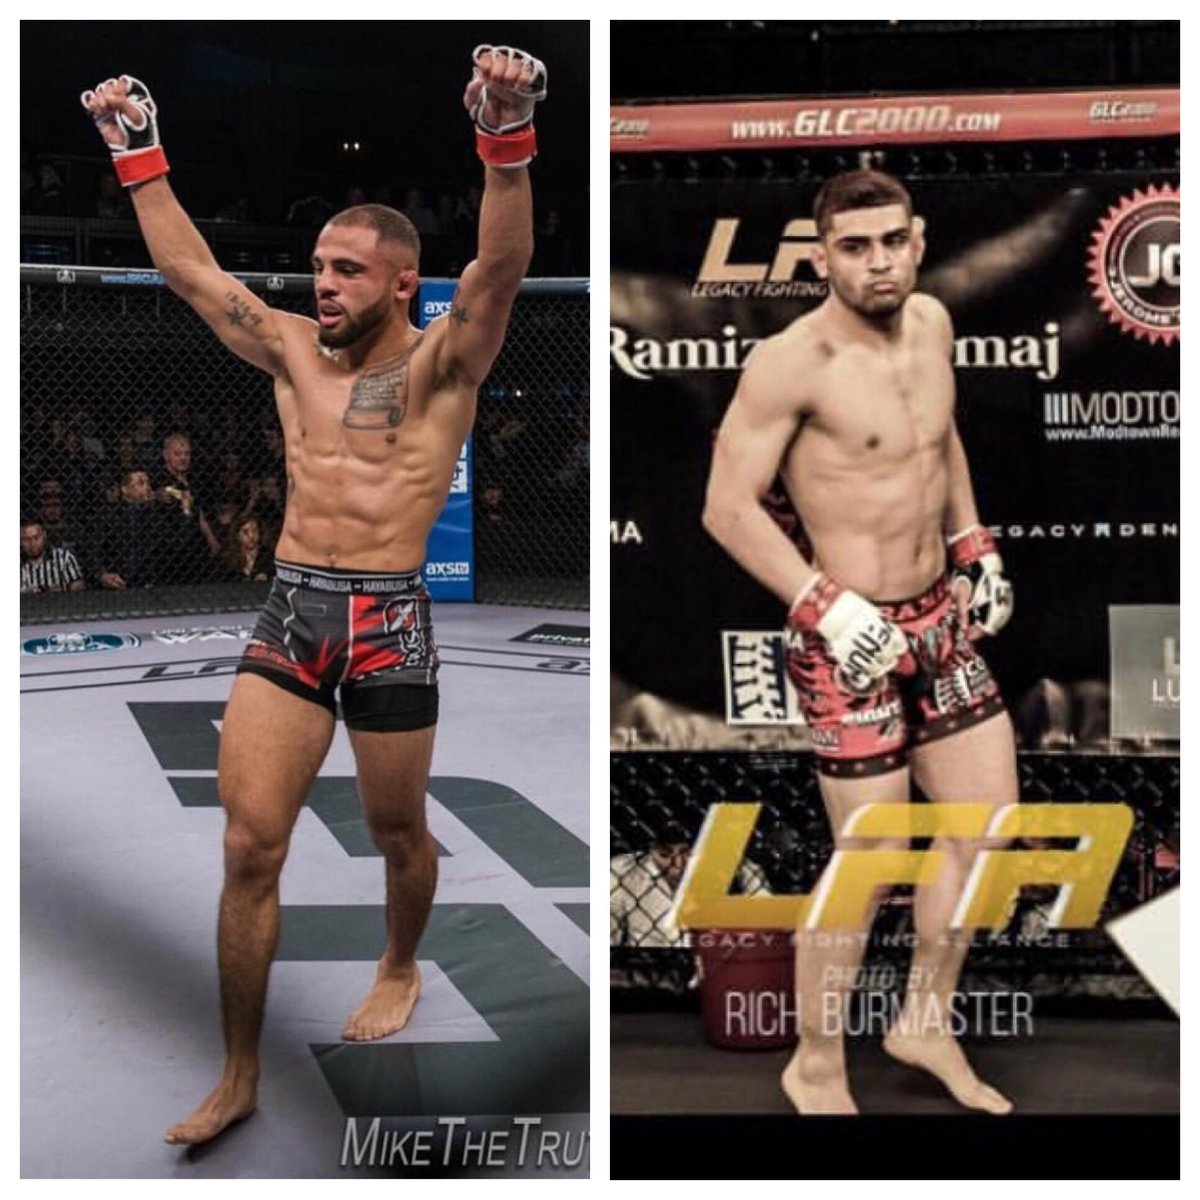 Two of our brothers are heading to the contender series June 25th let's go ! @milesxjohns @170Ramiz #dallas #txmma #fortismma